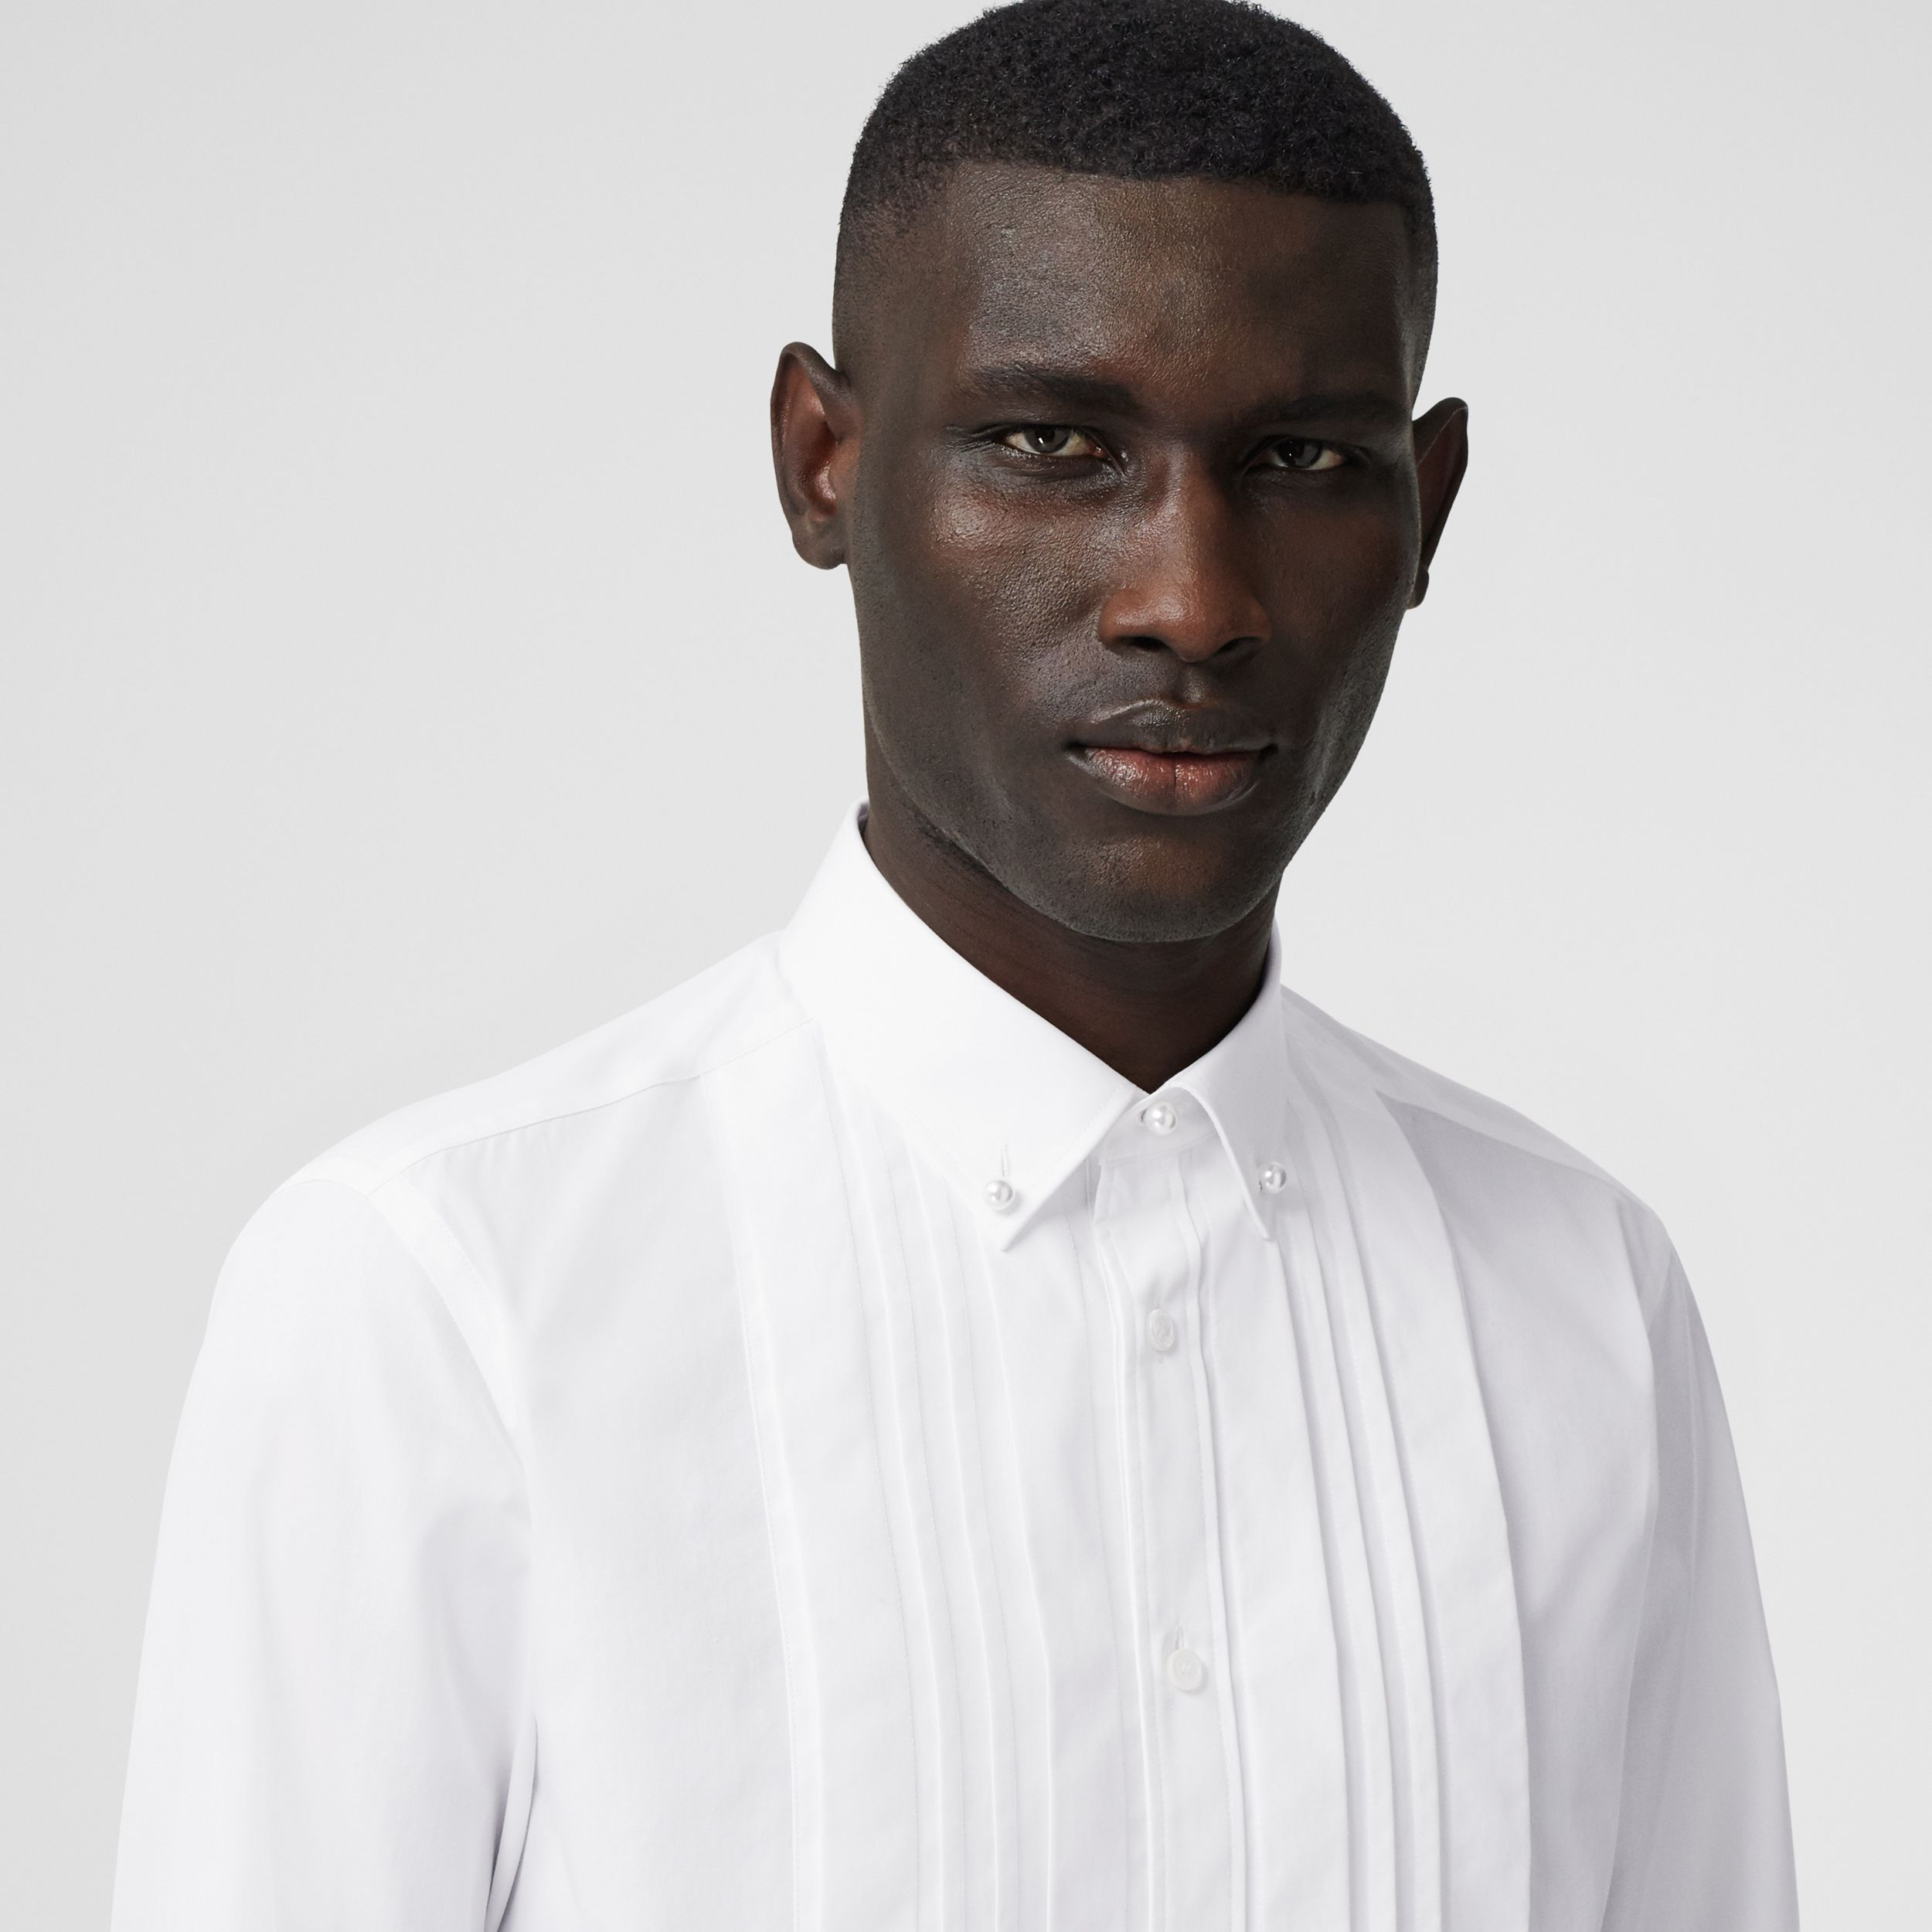 Resin Pearl Detail Cotton Poplin Dress Shirt in White - Men | Burberry United States - 2